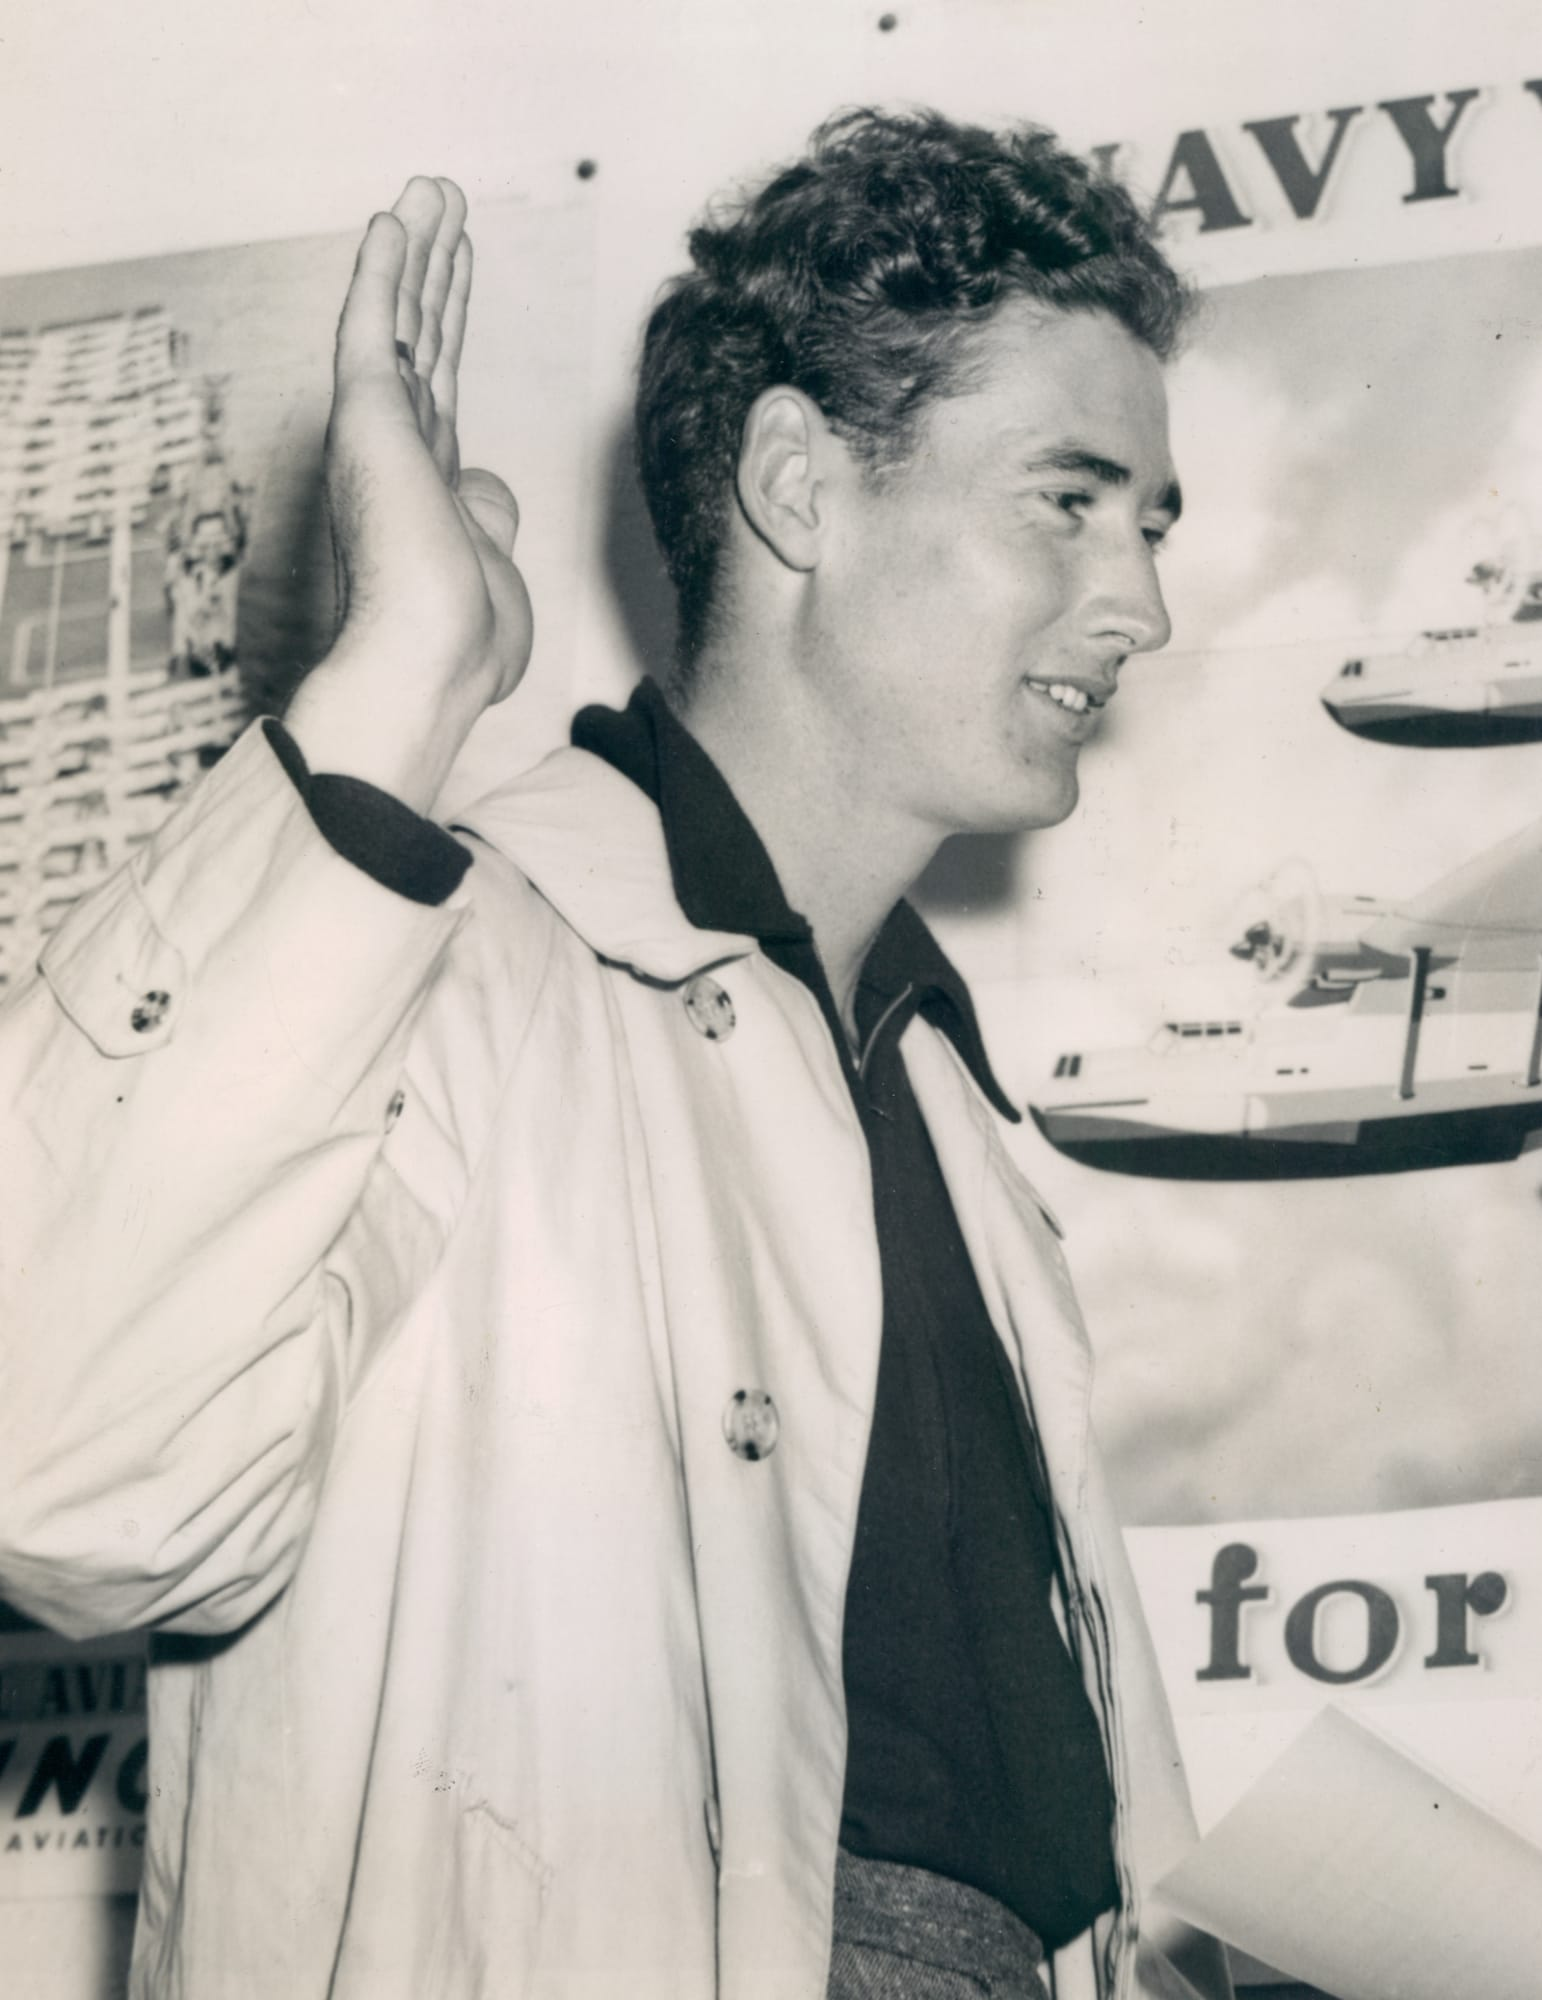 Red Sox Memories: Ted Williams' spectacular 1960 farewell season